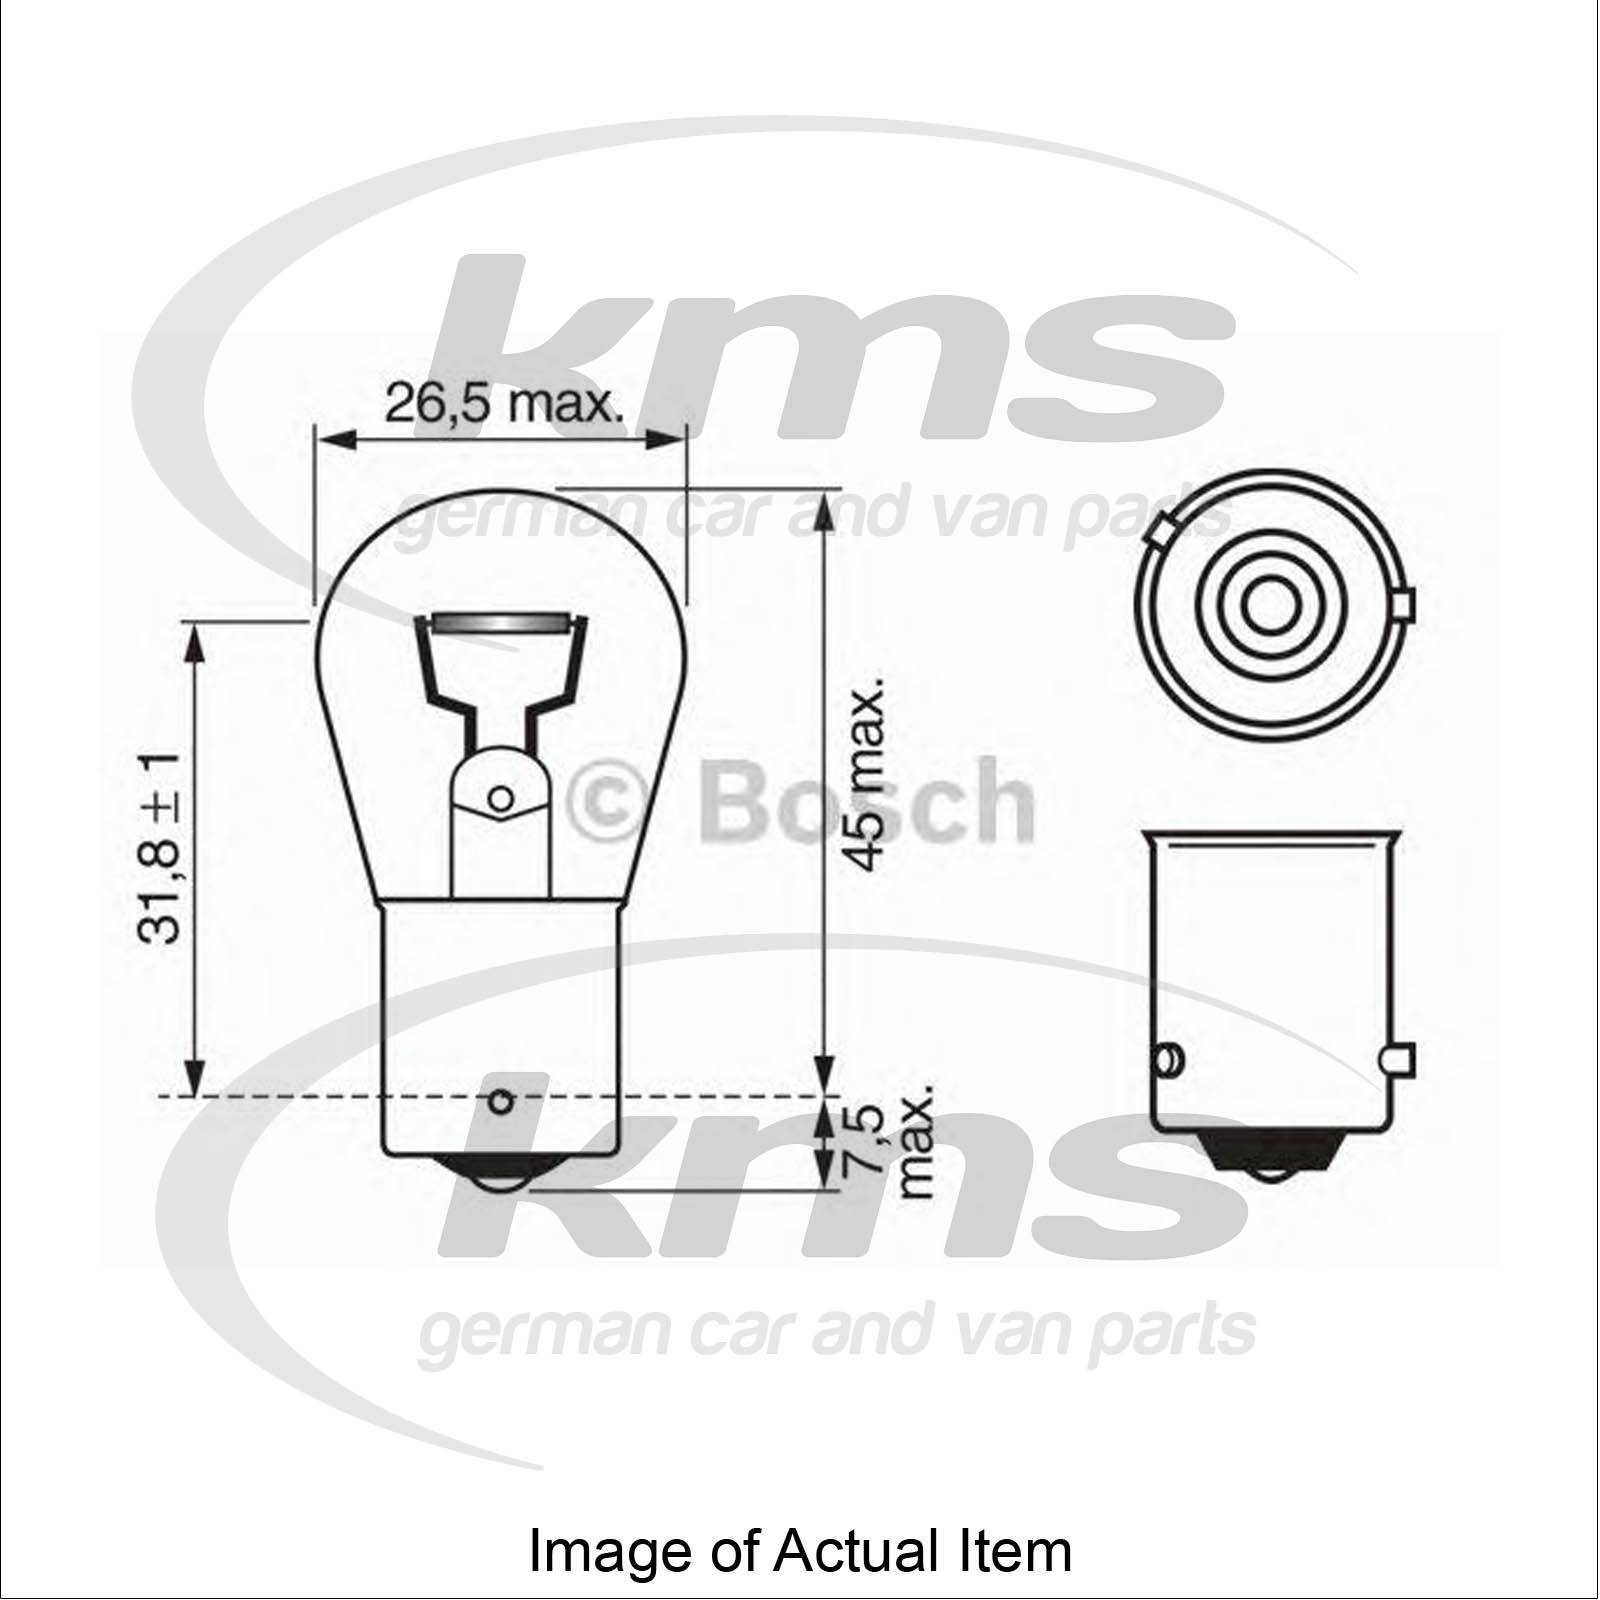 Bulb For Indicator Mercedes M Class W163 Ml 320 163 154